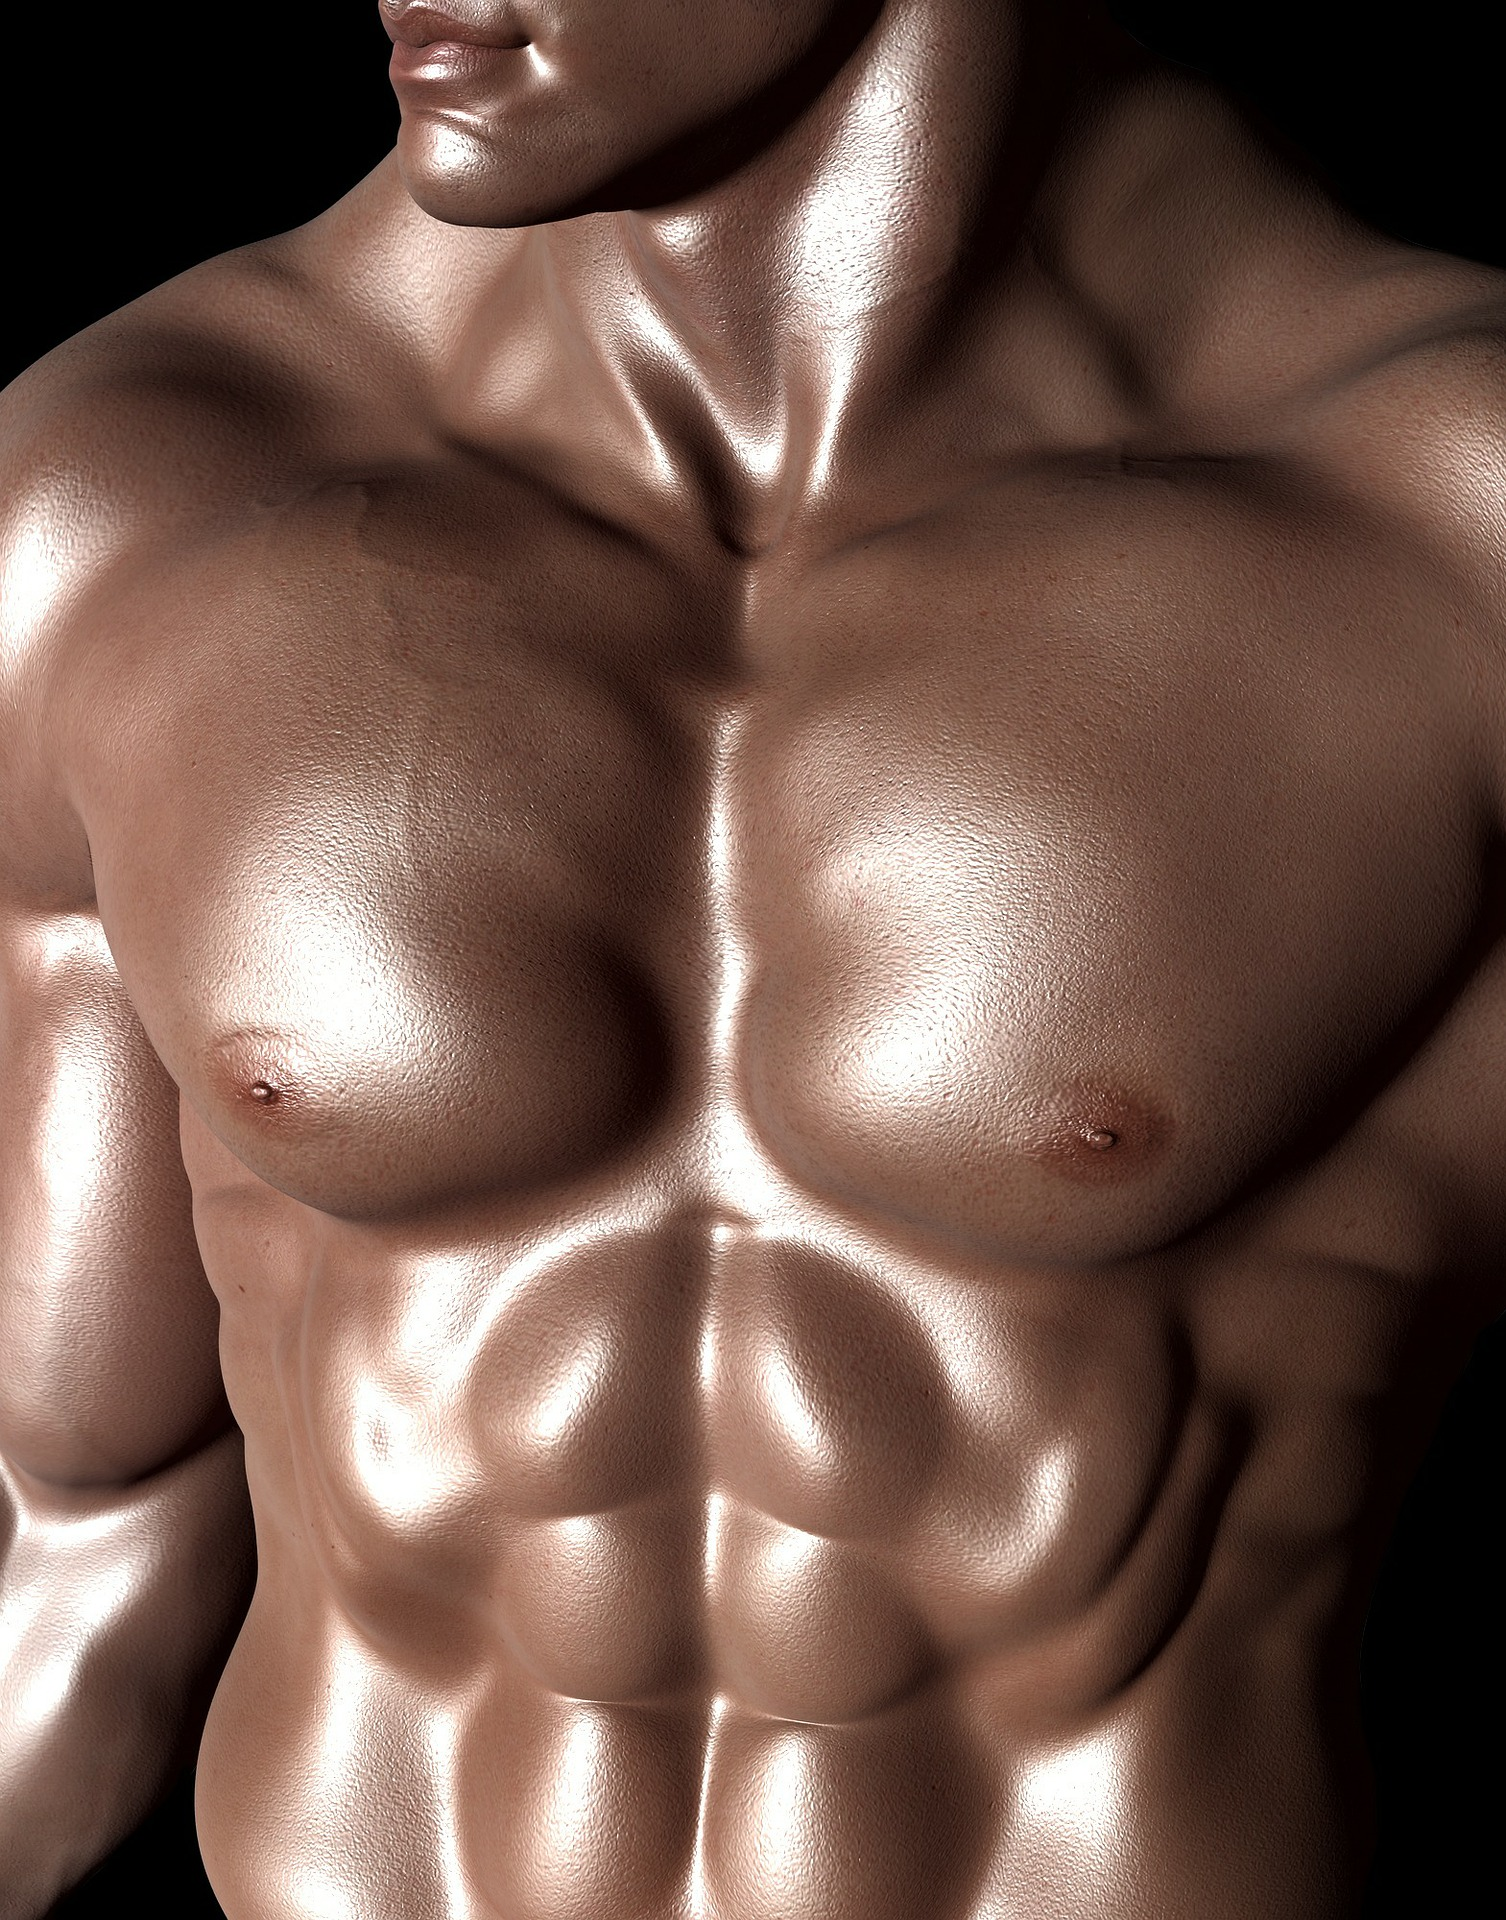 Body Waxing for Women and Men in Dallas - Fort Worth Texas